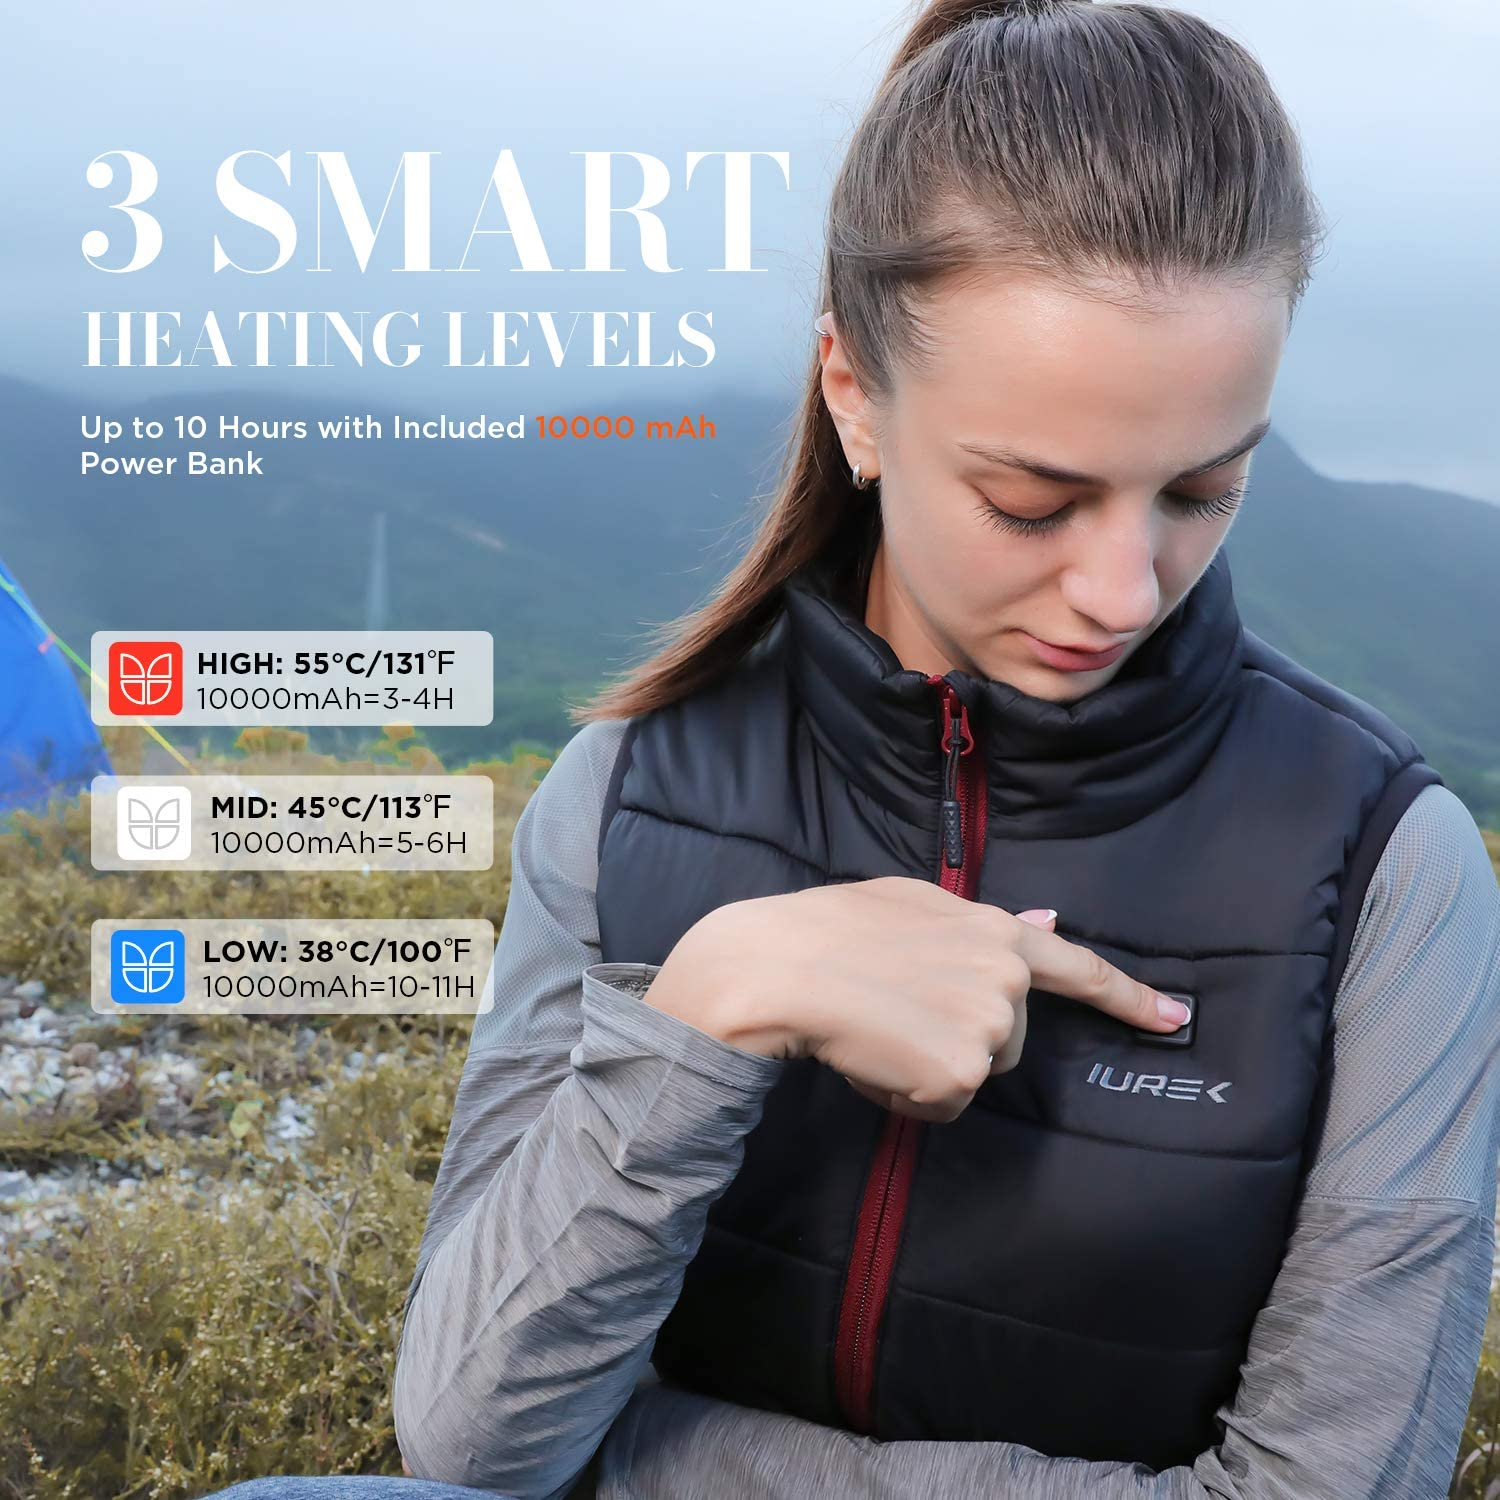 IUREK ZD937 Heated Vest Insulated Heated Apparel for Women Heating clothing